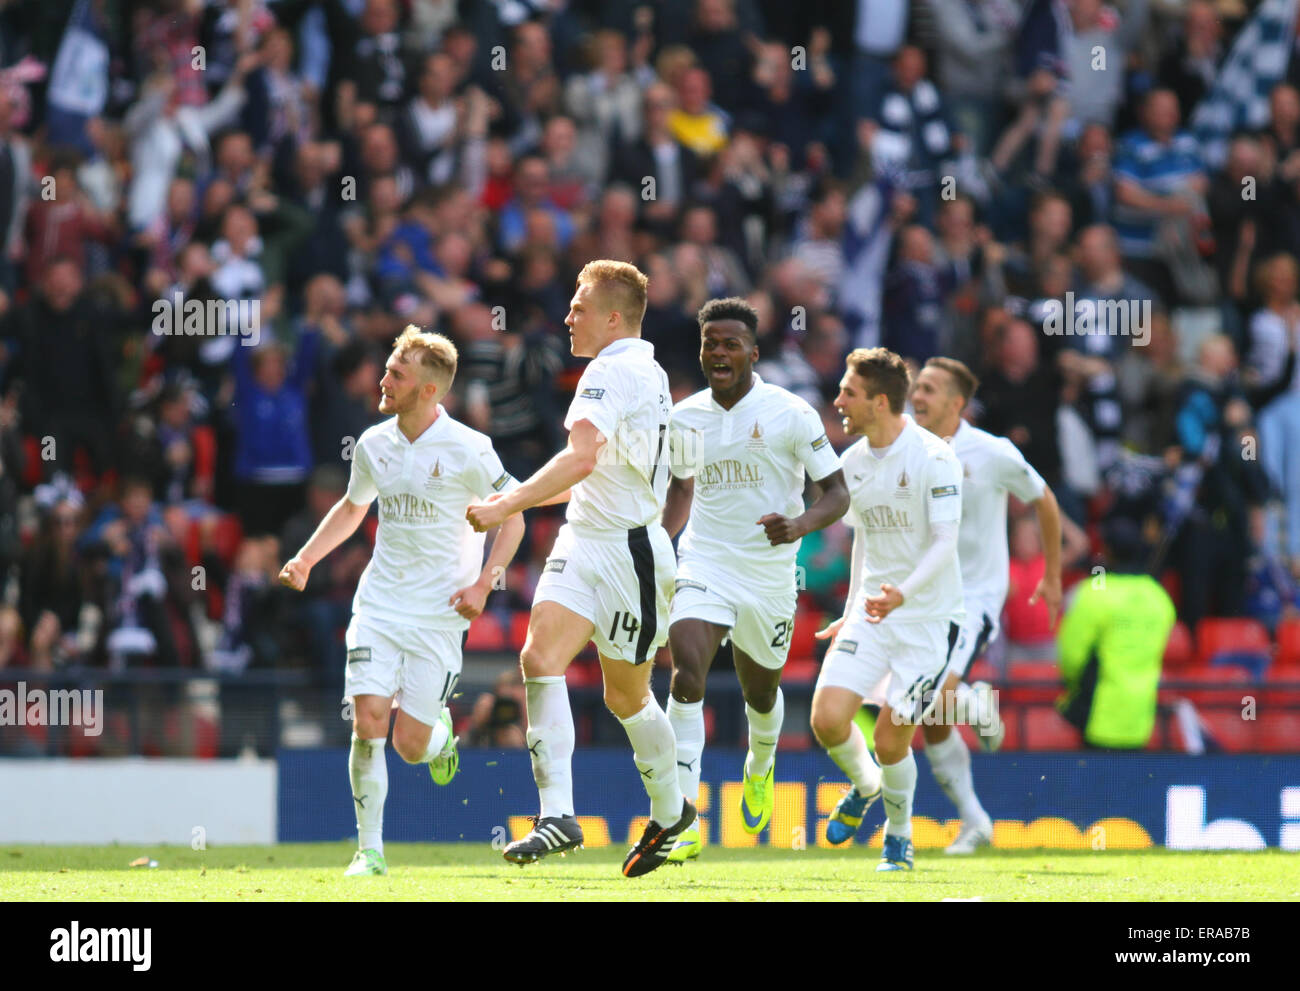 Glasgow, Scotland. 30th May, 2015. Scottish Cup Final. Falkirk versus Inverness CT. Peter Grant celebrates his goal - Stock Image